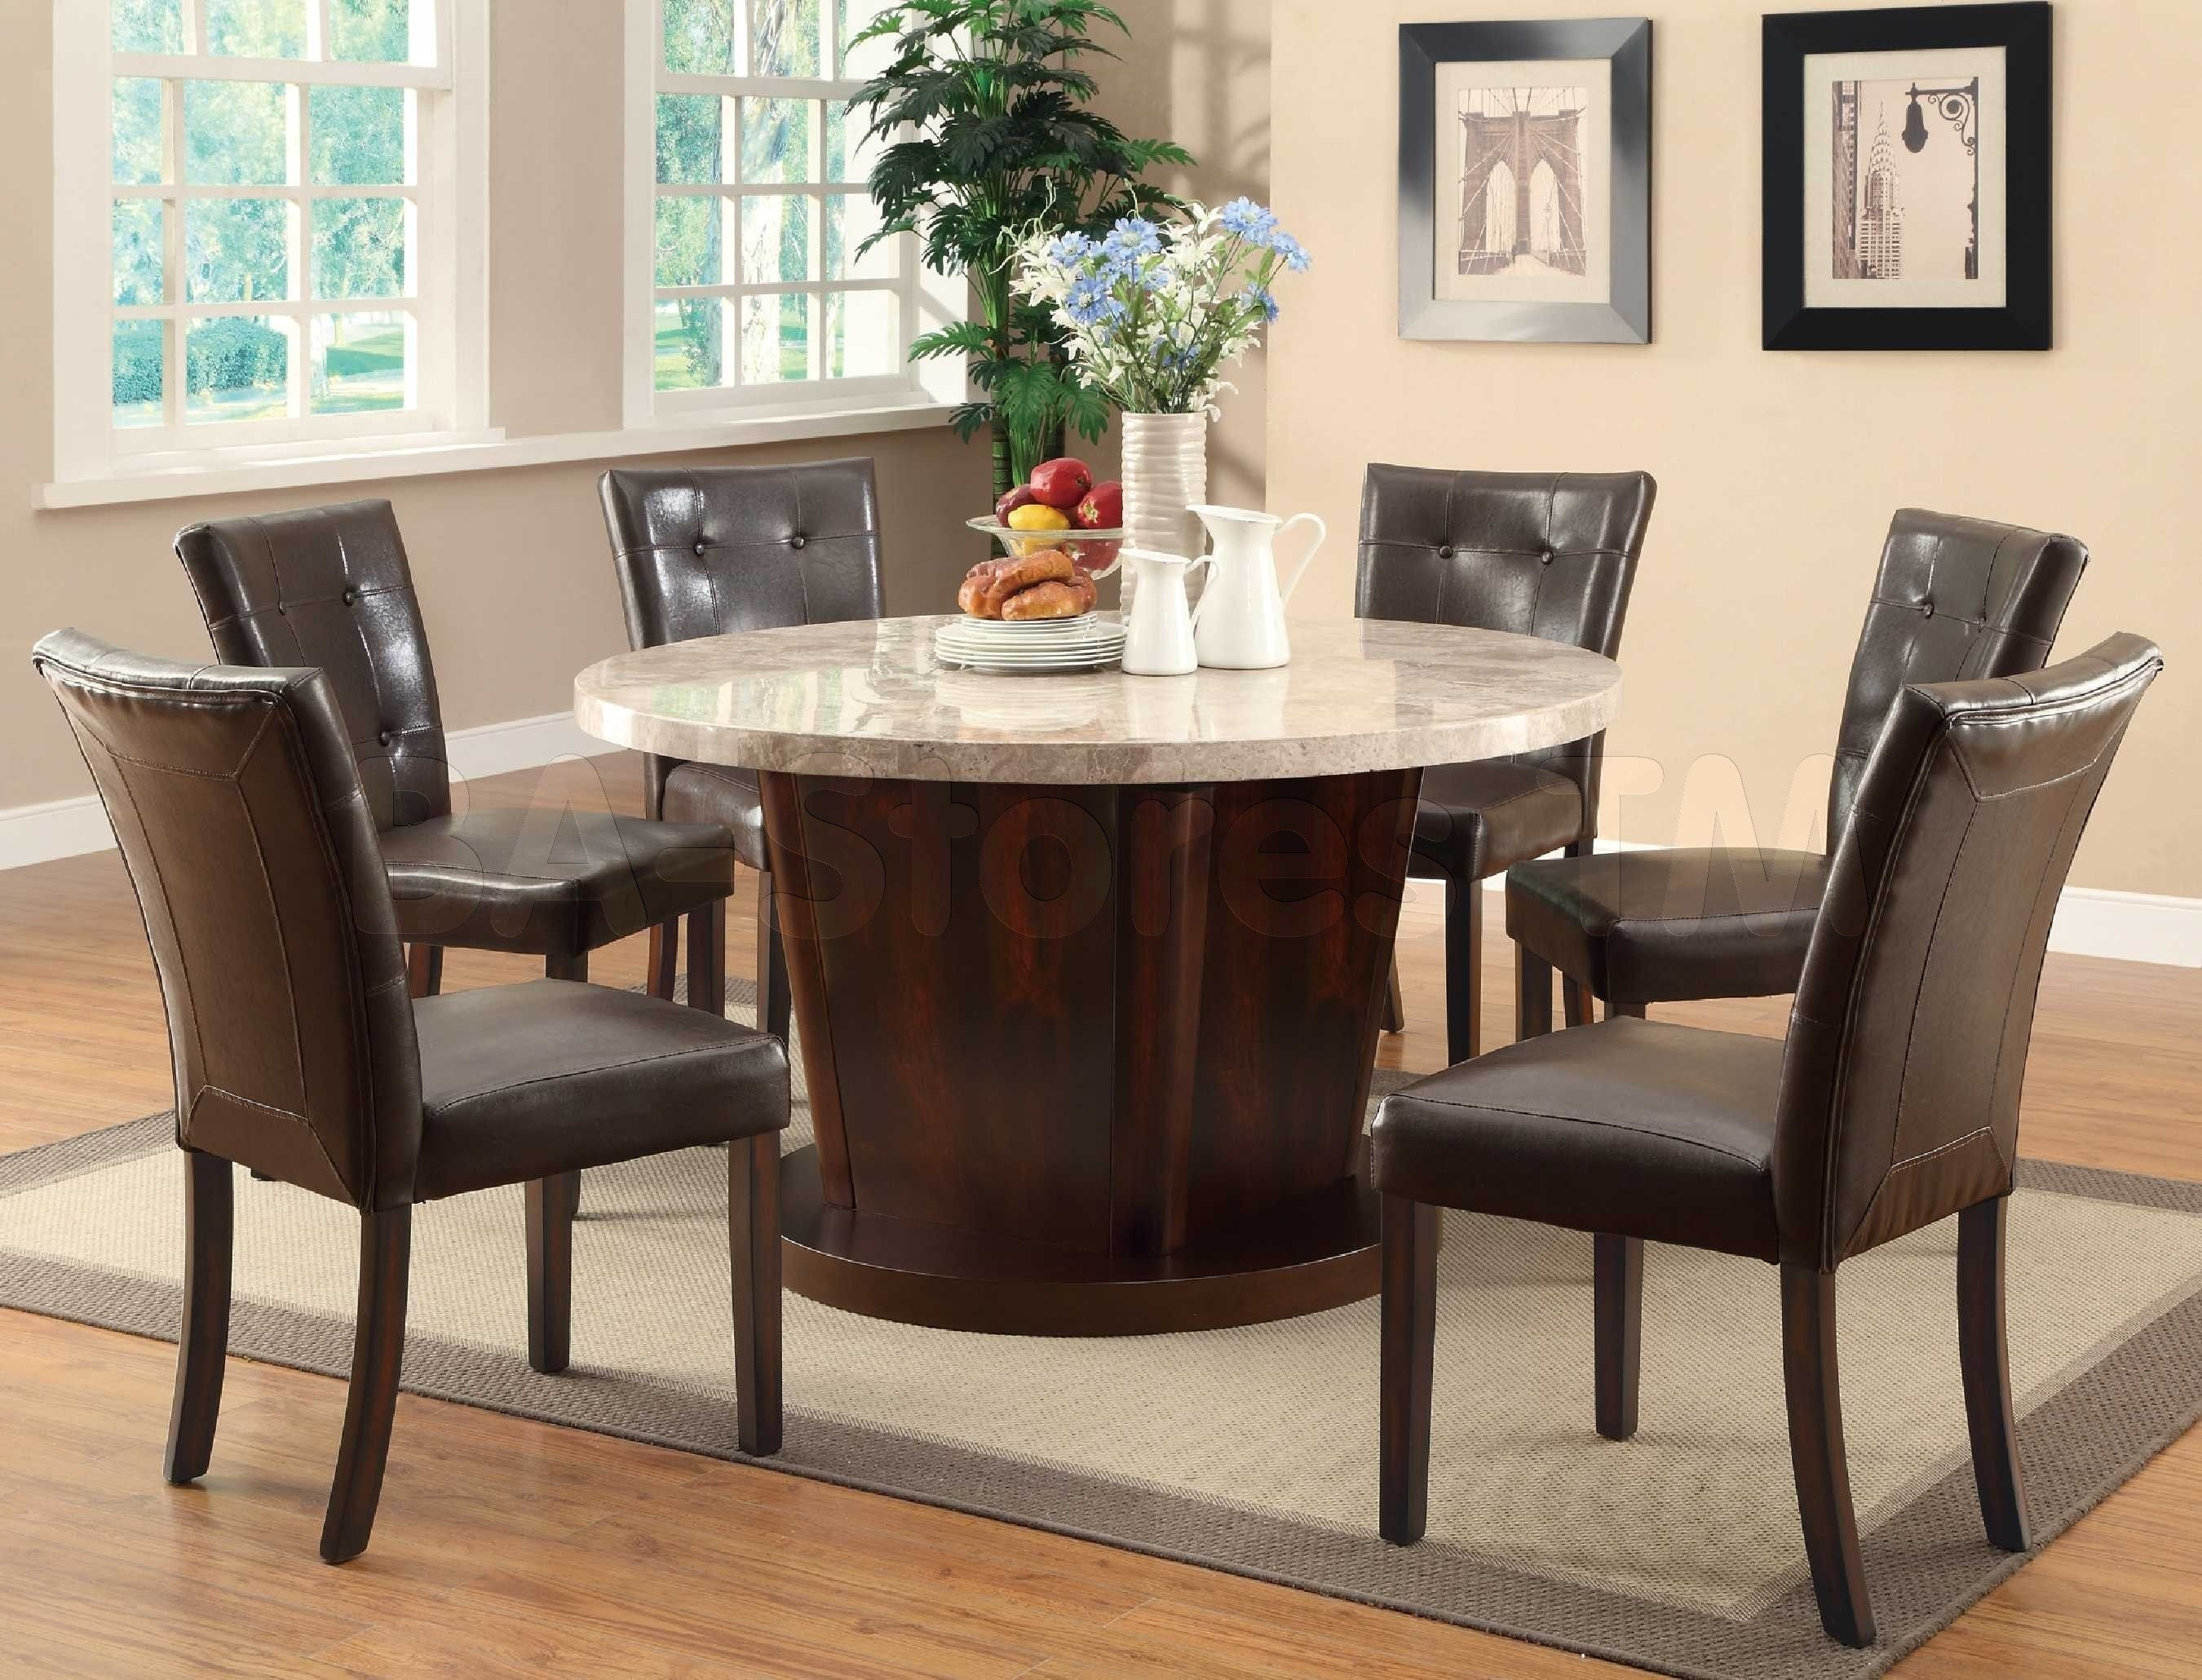 Low Cost Dining Room Tables. Dishy Room Tables Cheap Prices Dining Pertaining To Most Recently Released Norwood 7 Piece Rectangular Extension Dining Sets With Bench, Host & Side Chairs (Photo 10 of 20)